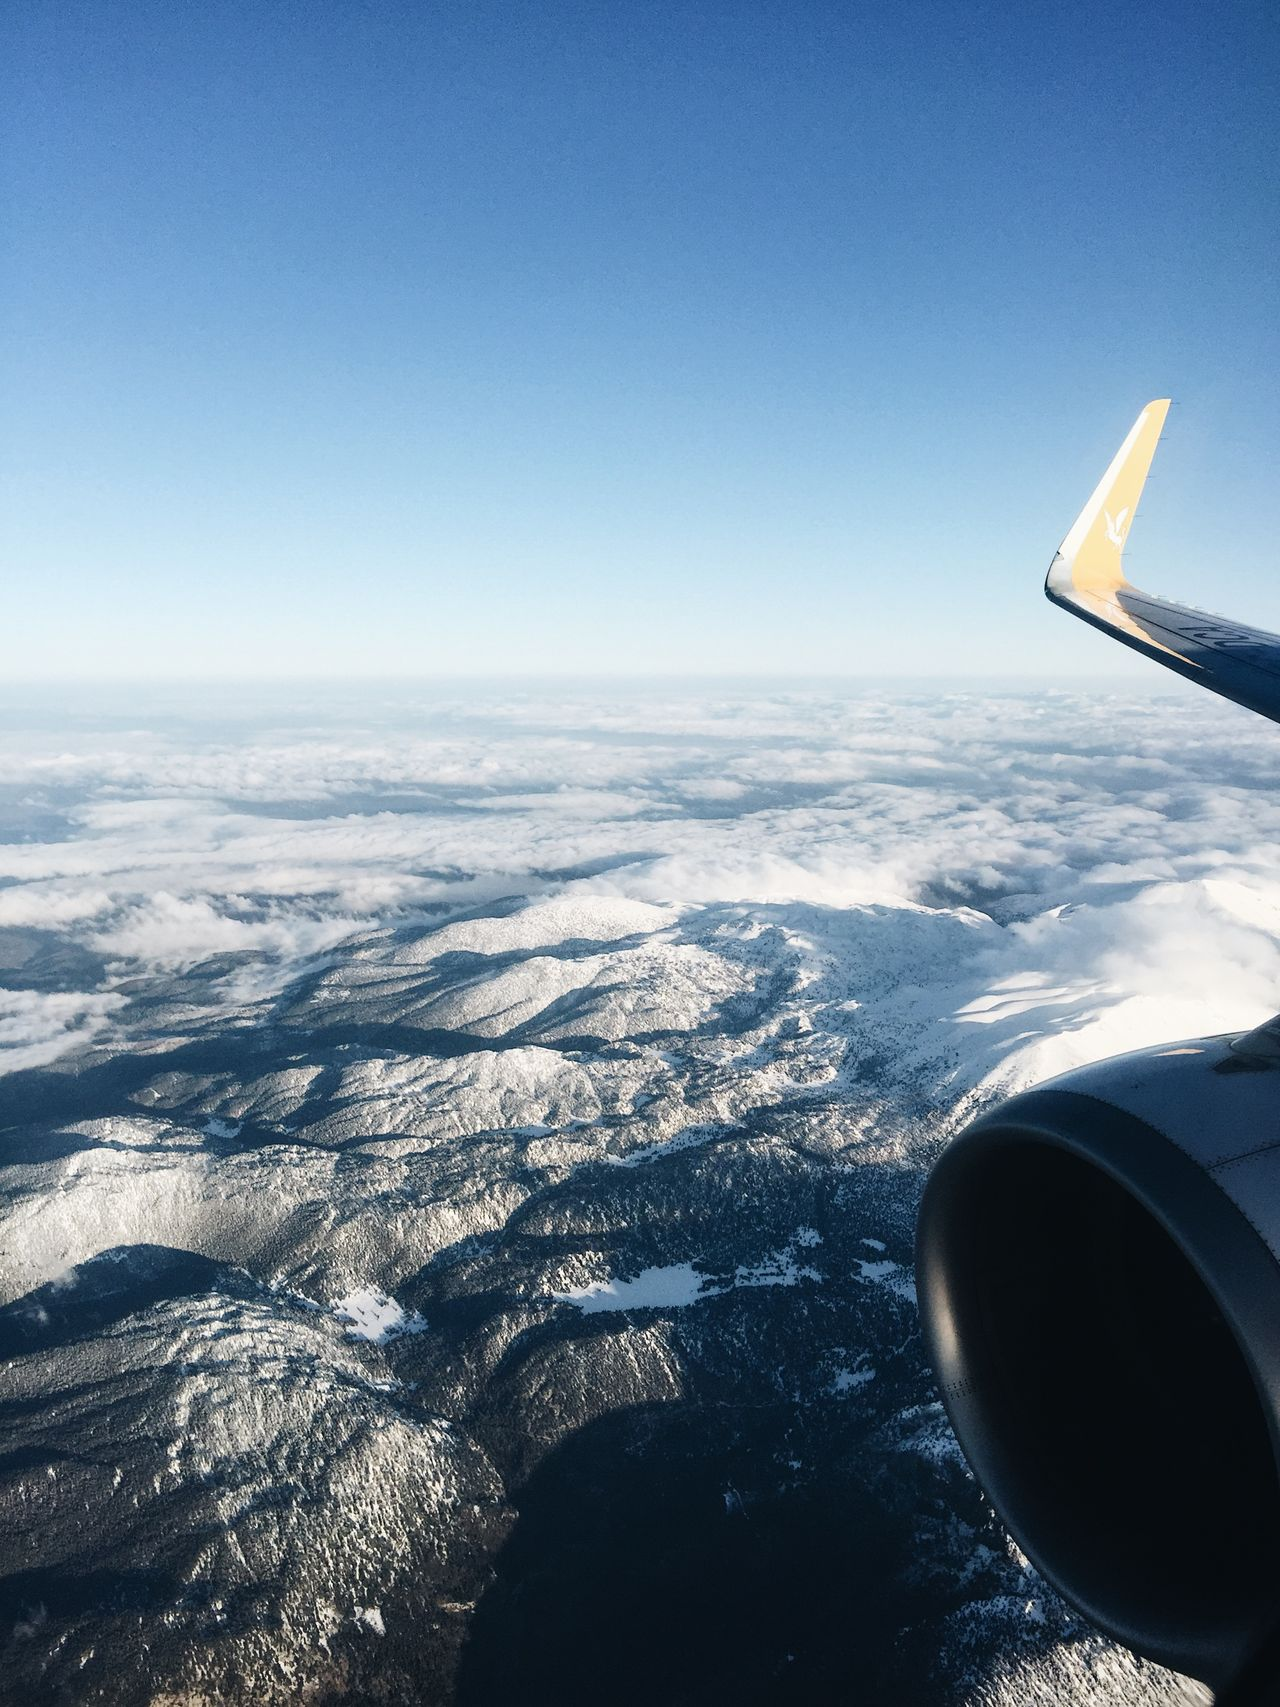 Airplane wing and aereal view at Turkey Aereal View Aerial View Air Vehicle Aircraft Wing Airplane Airplane Wing Beautiful Beauty In Nature Cold Temperature Engine Flying Horizon Journey Landscape Mode Of Transport Mountain Nature Pegasus Pegasus Airlines Scenics Snow Tranquility Transportation Travel Turkey